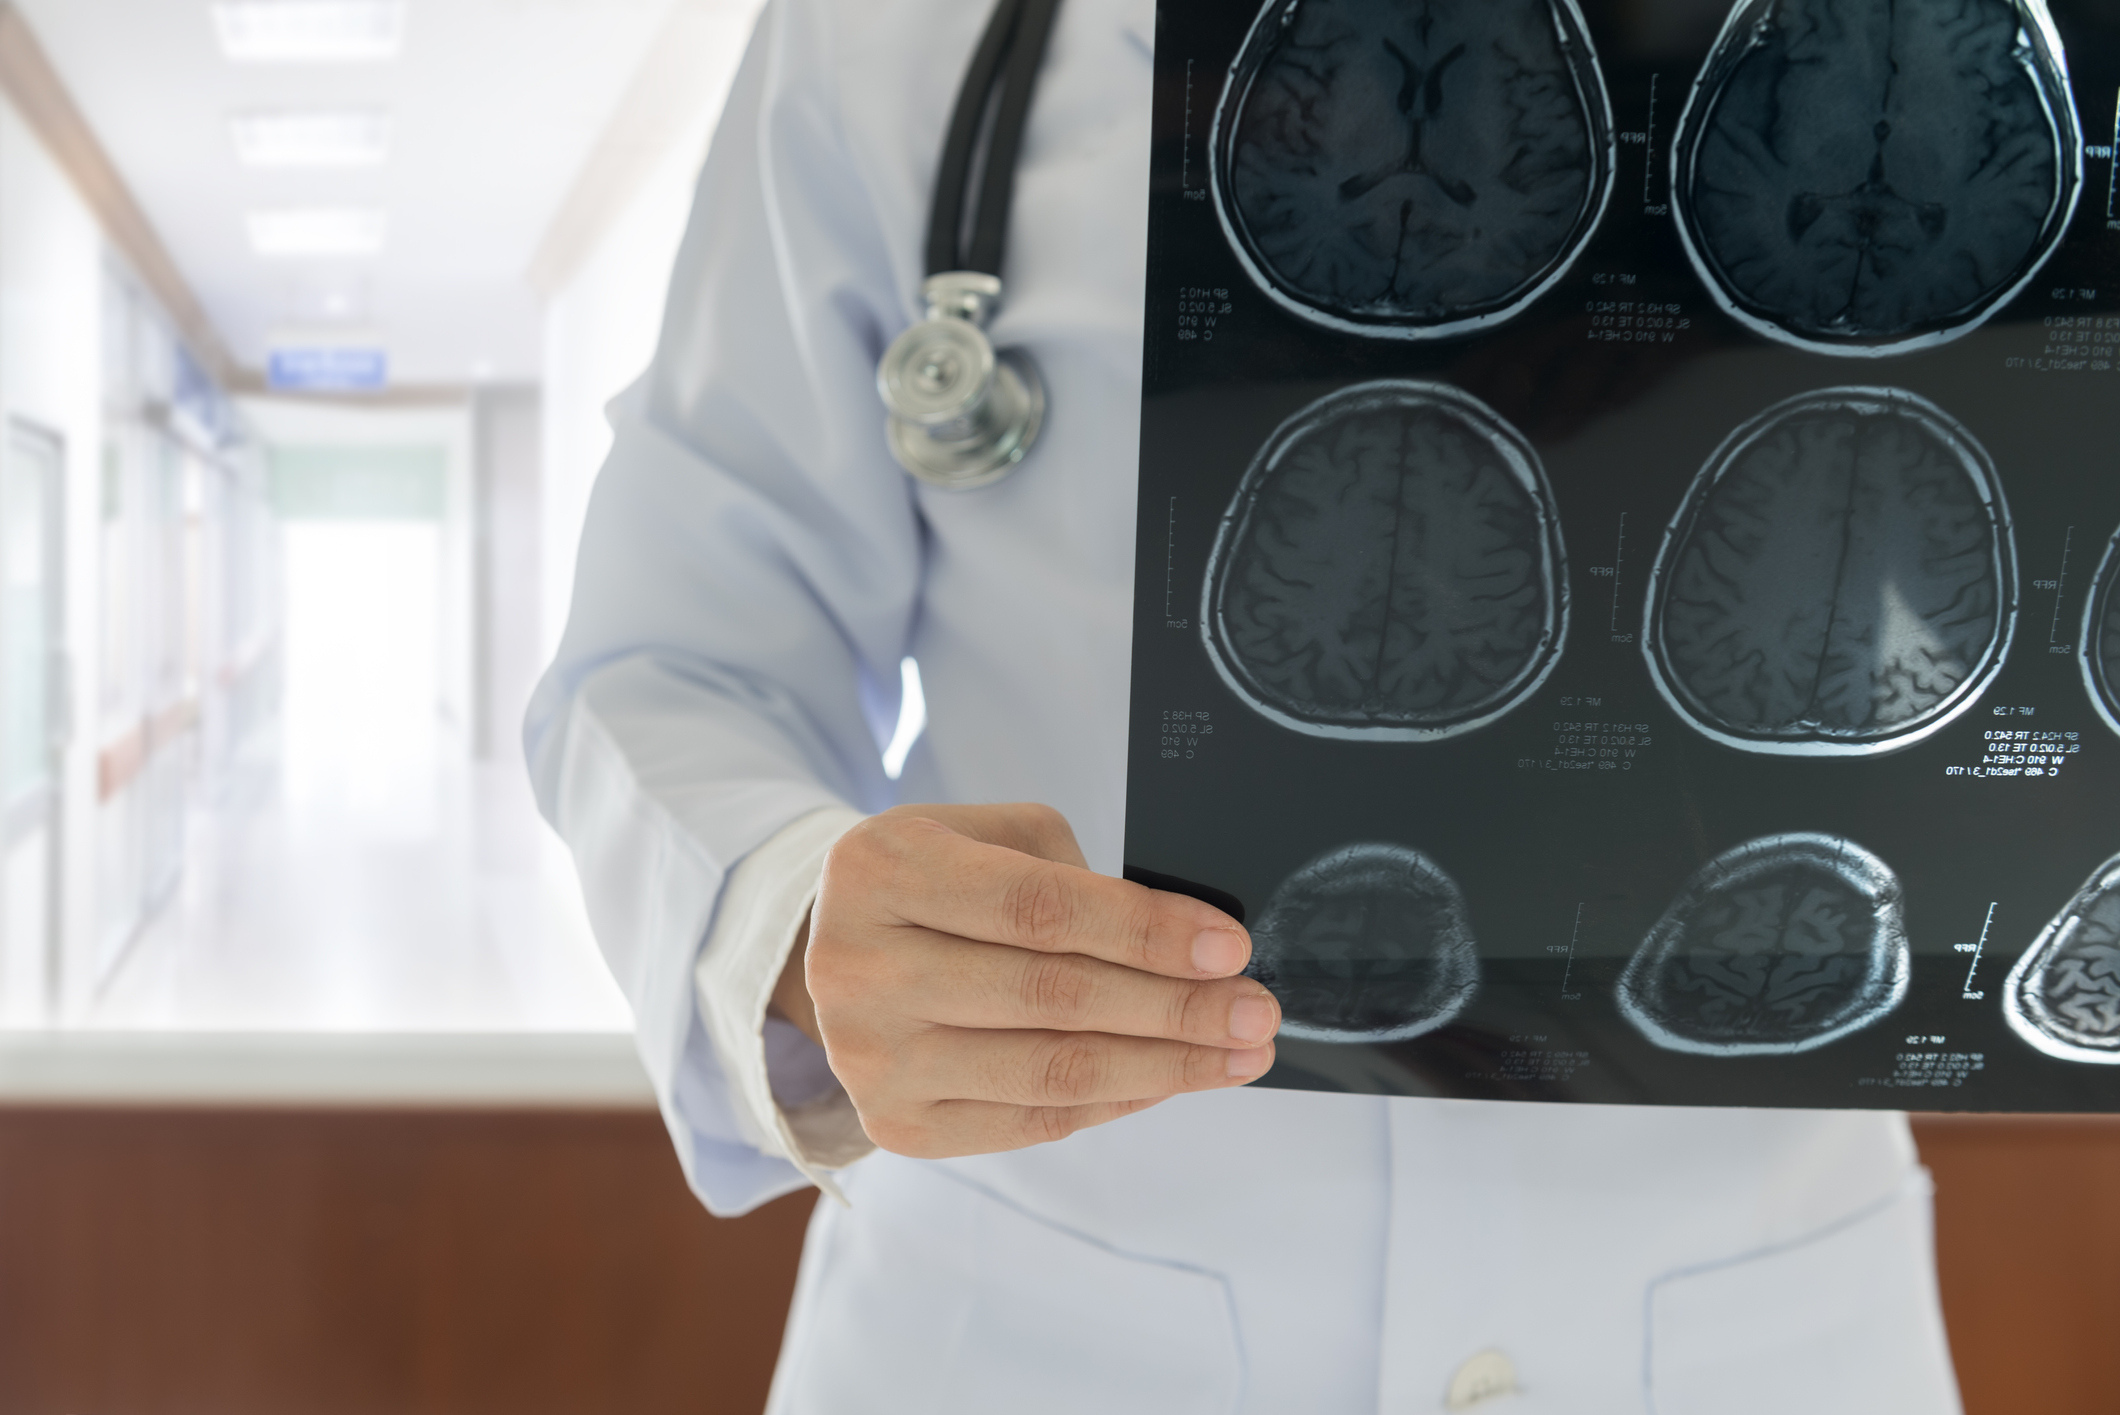 Doctor wearing white coat examines brain images on an X-ray